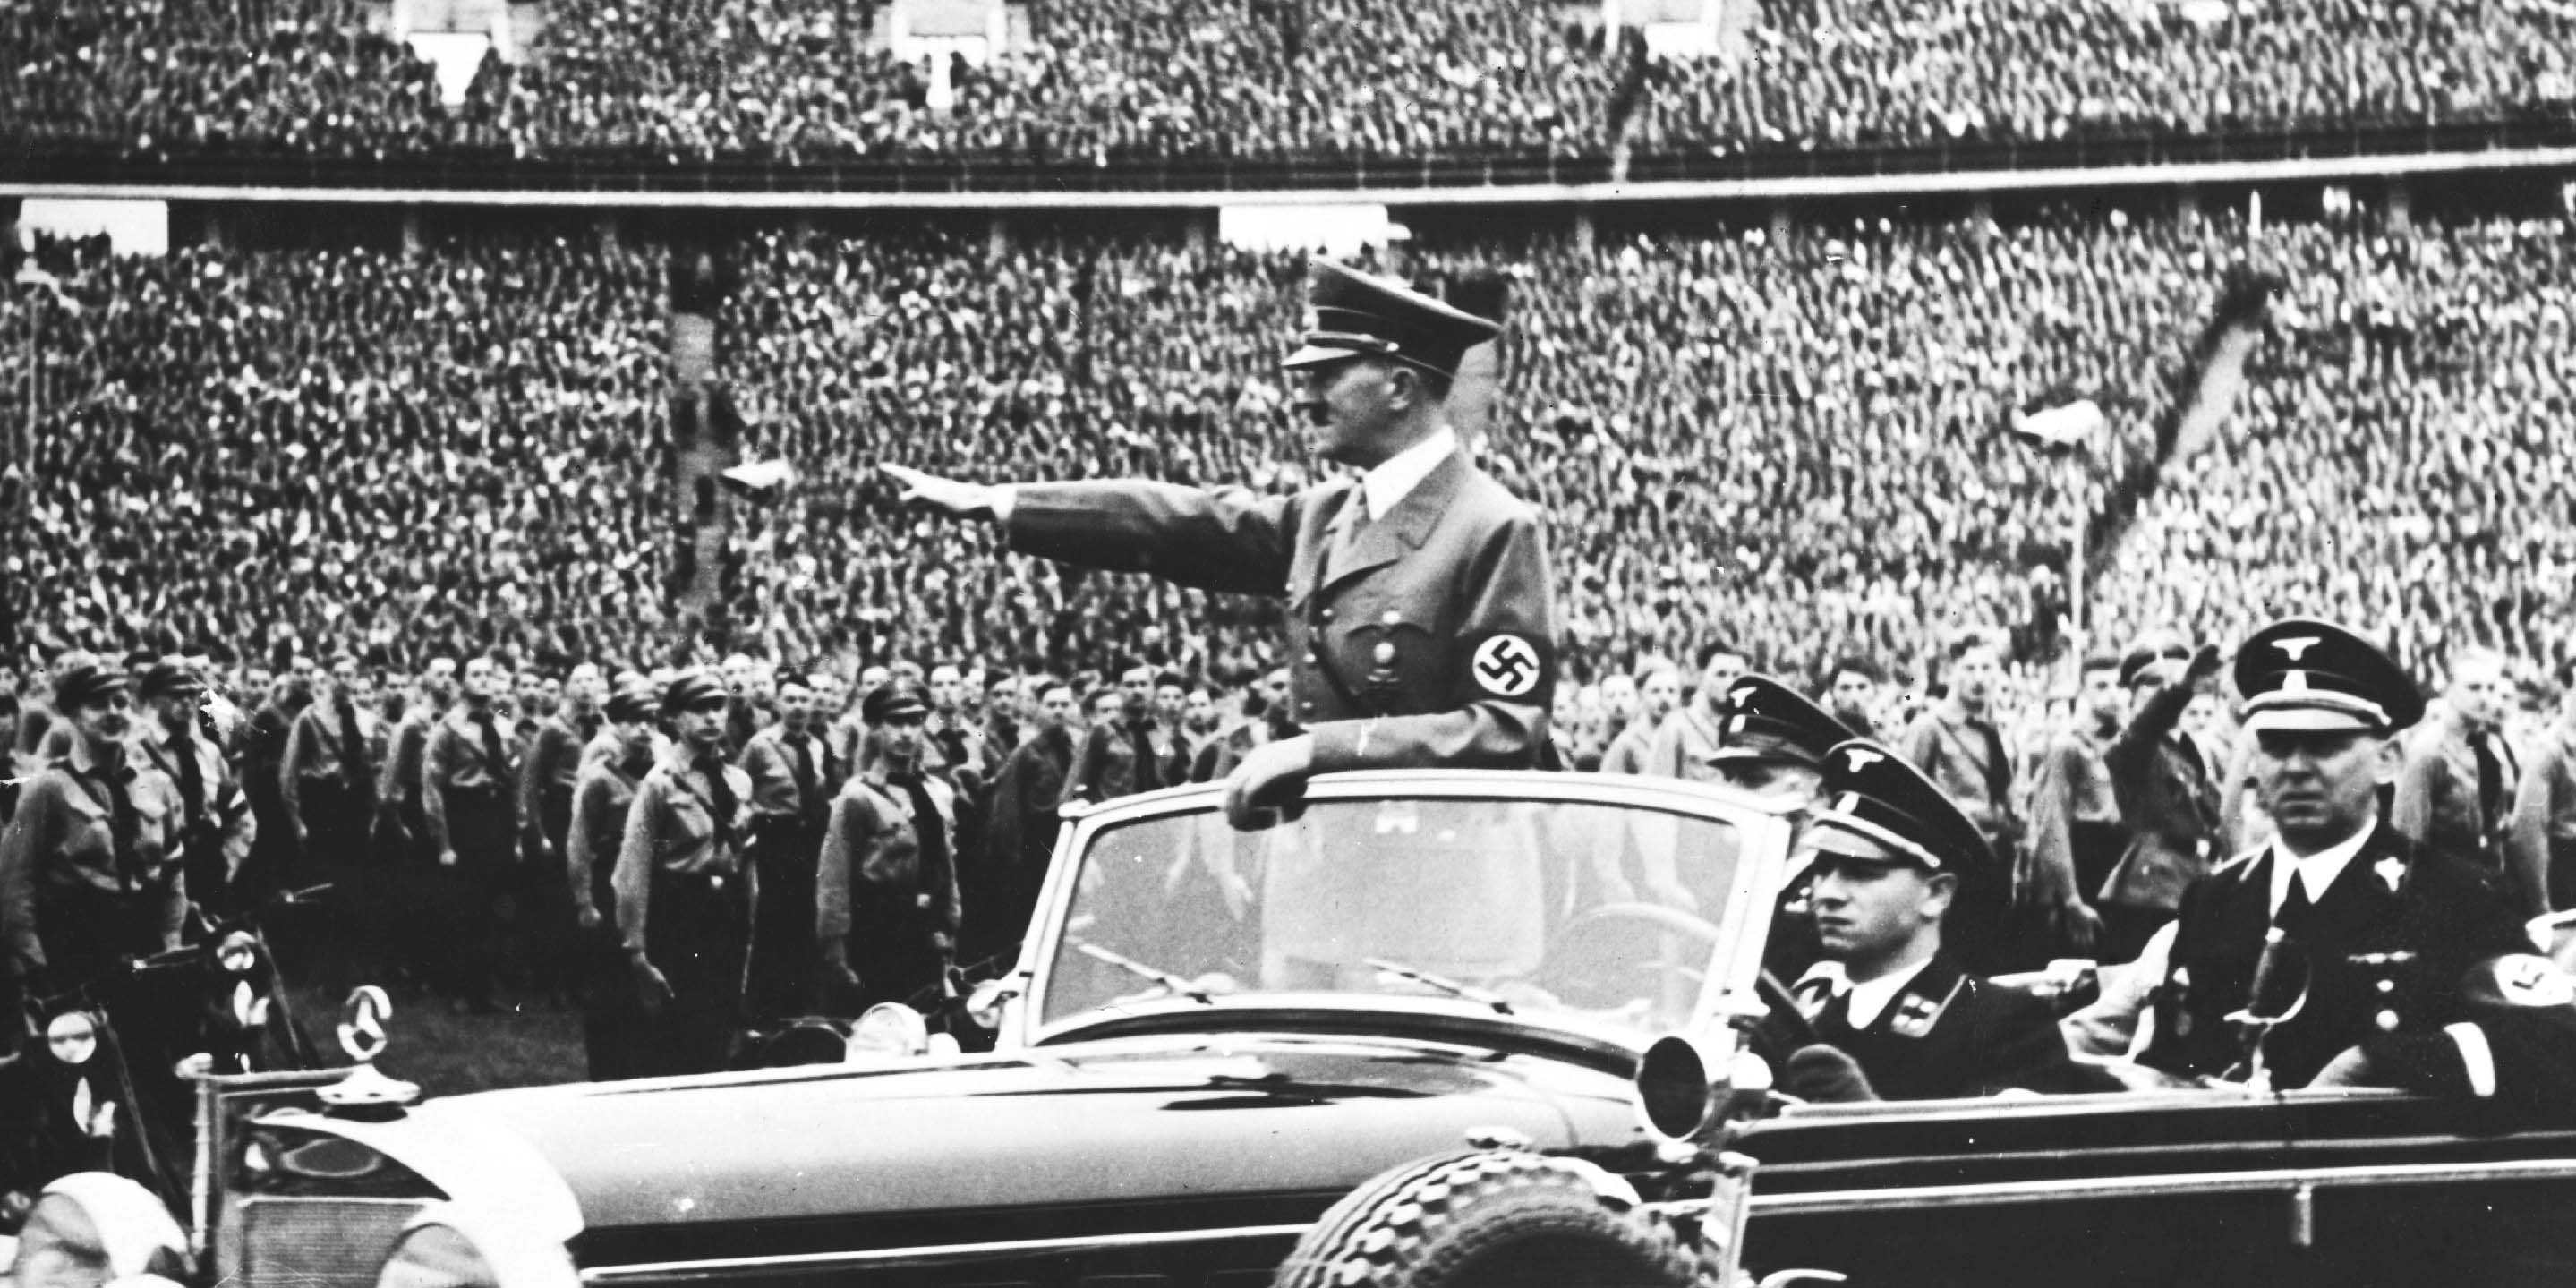 Adolf Hitler salutes a crowd of soldiers at a rally in Germany on May 1, 1938.